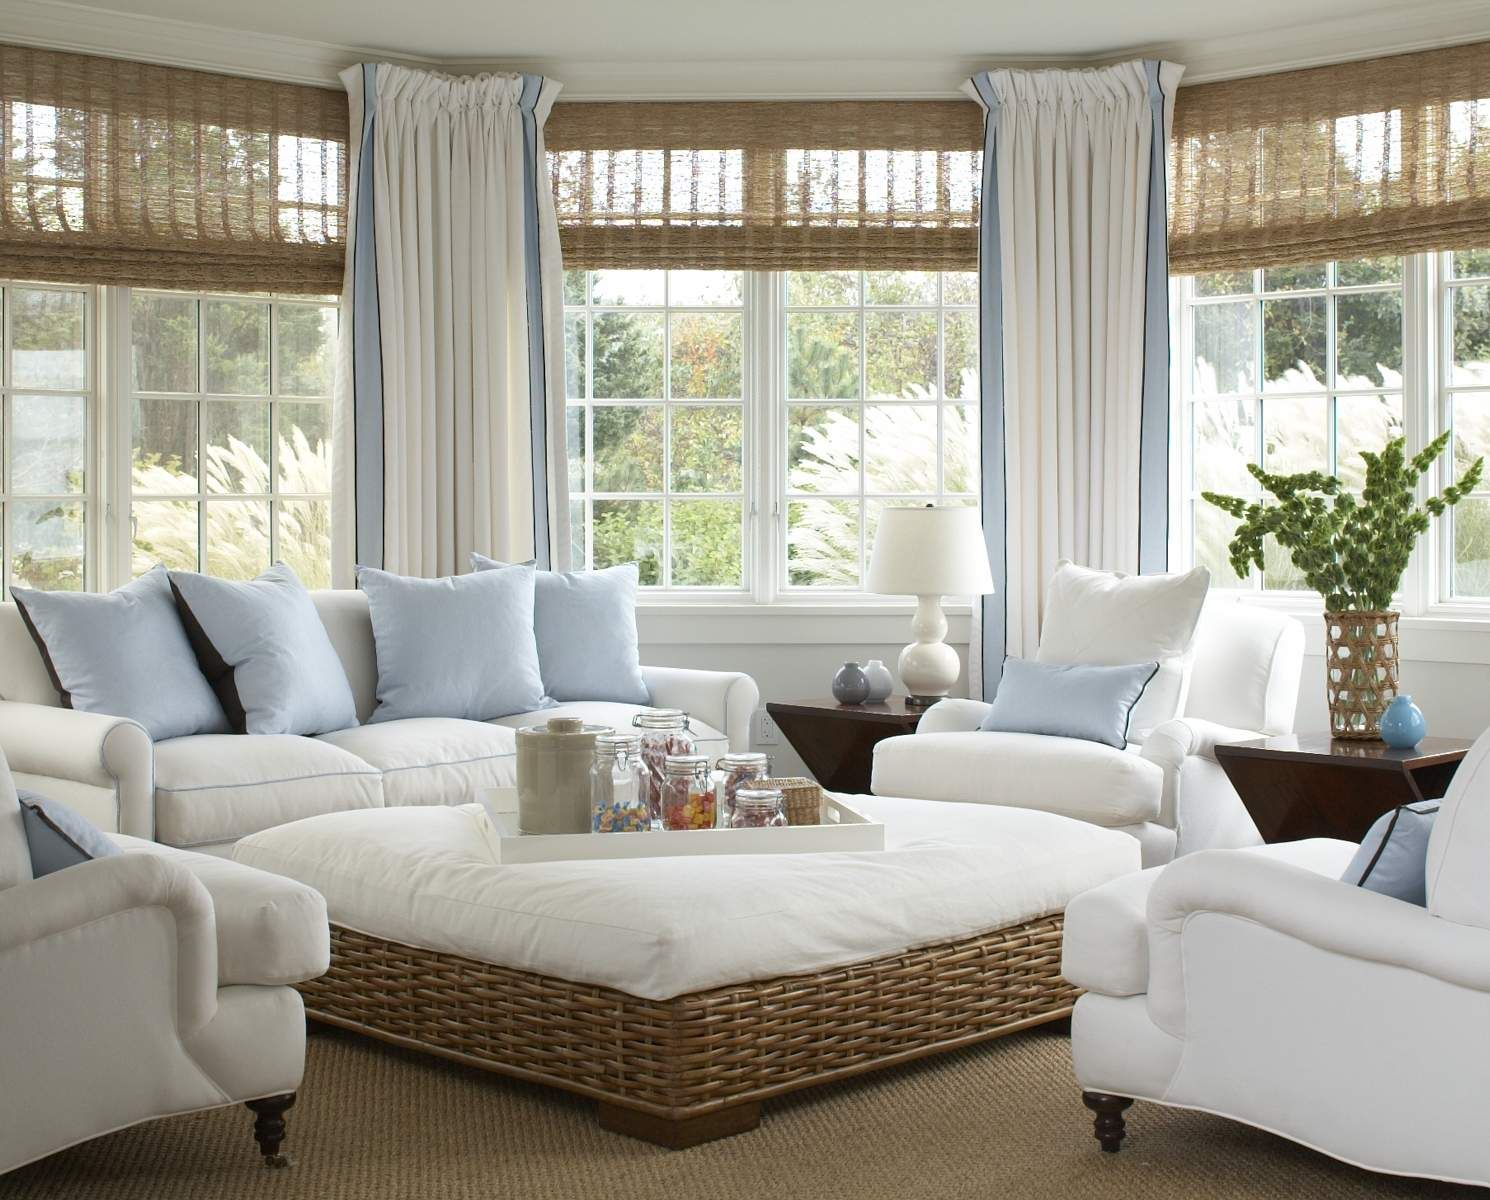 Style Archiveu2014Awash In White. Sunroom IdeasSunroom DecoratingDecorating ...